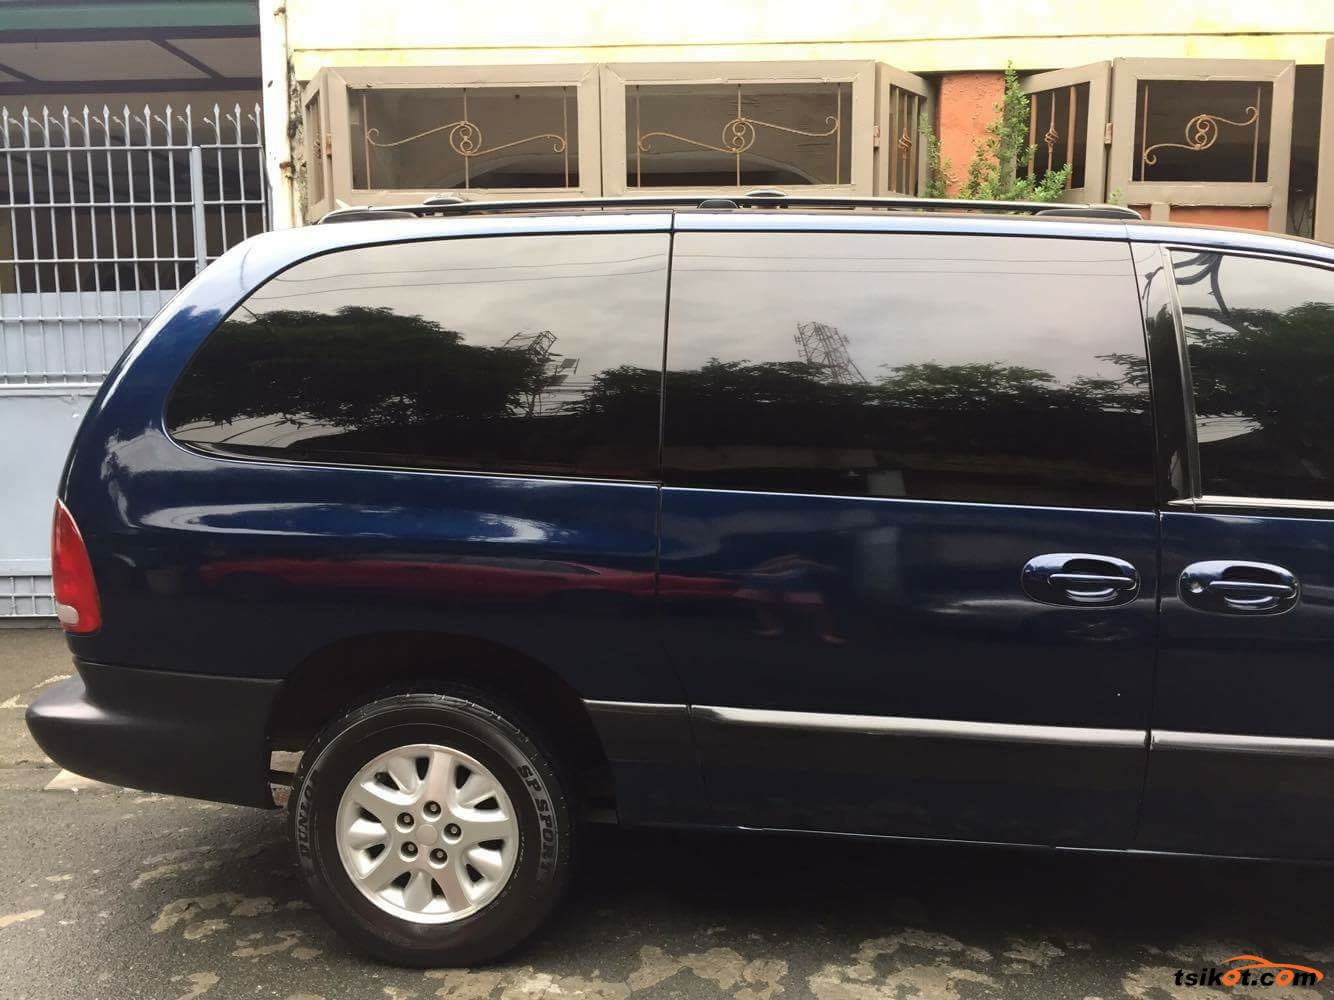 chrysler voyager 2000 car for sale metro manila philippines. Black Bedroom Furniture Sets. Home Design Ideas